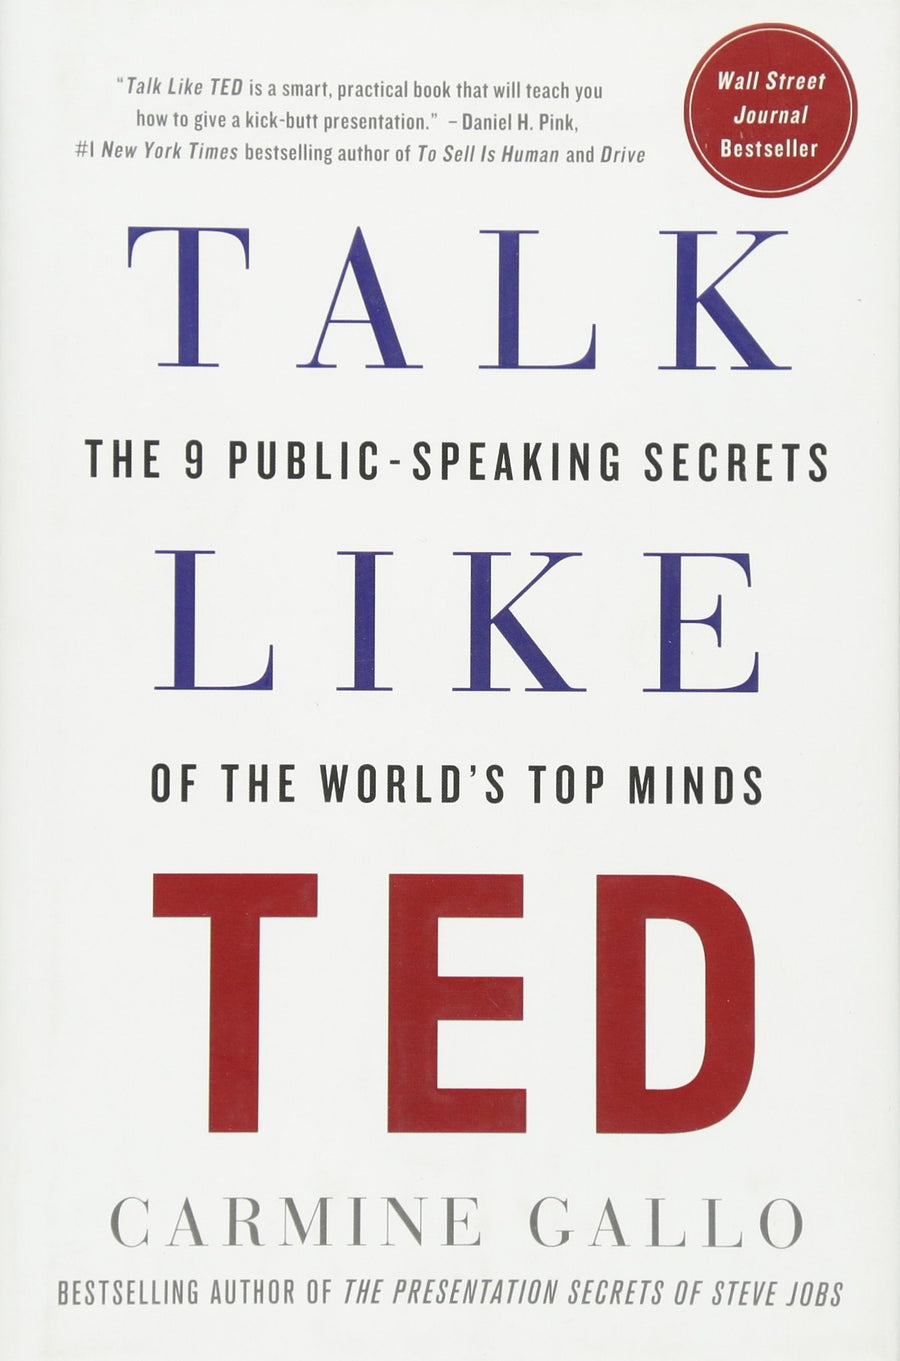 Talk Like TED: The 9 Public-Speaking Secrets of the World's Top Minds - Leadership Books